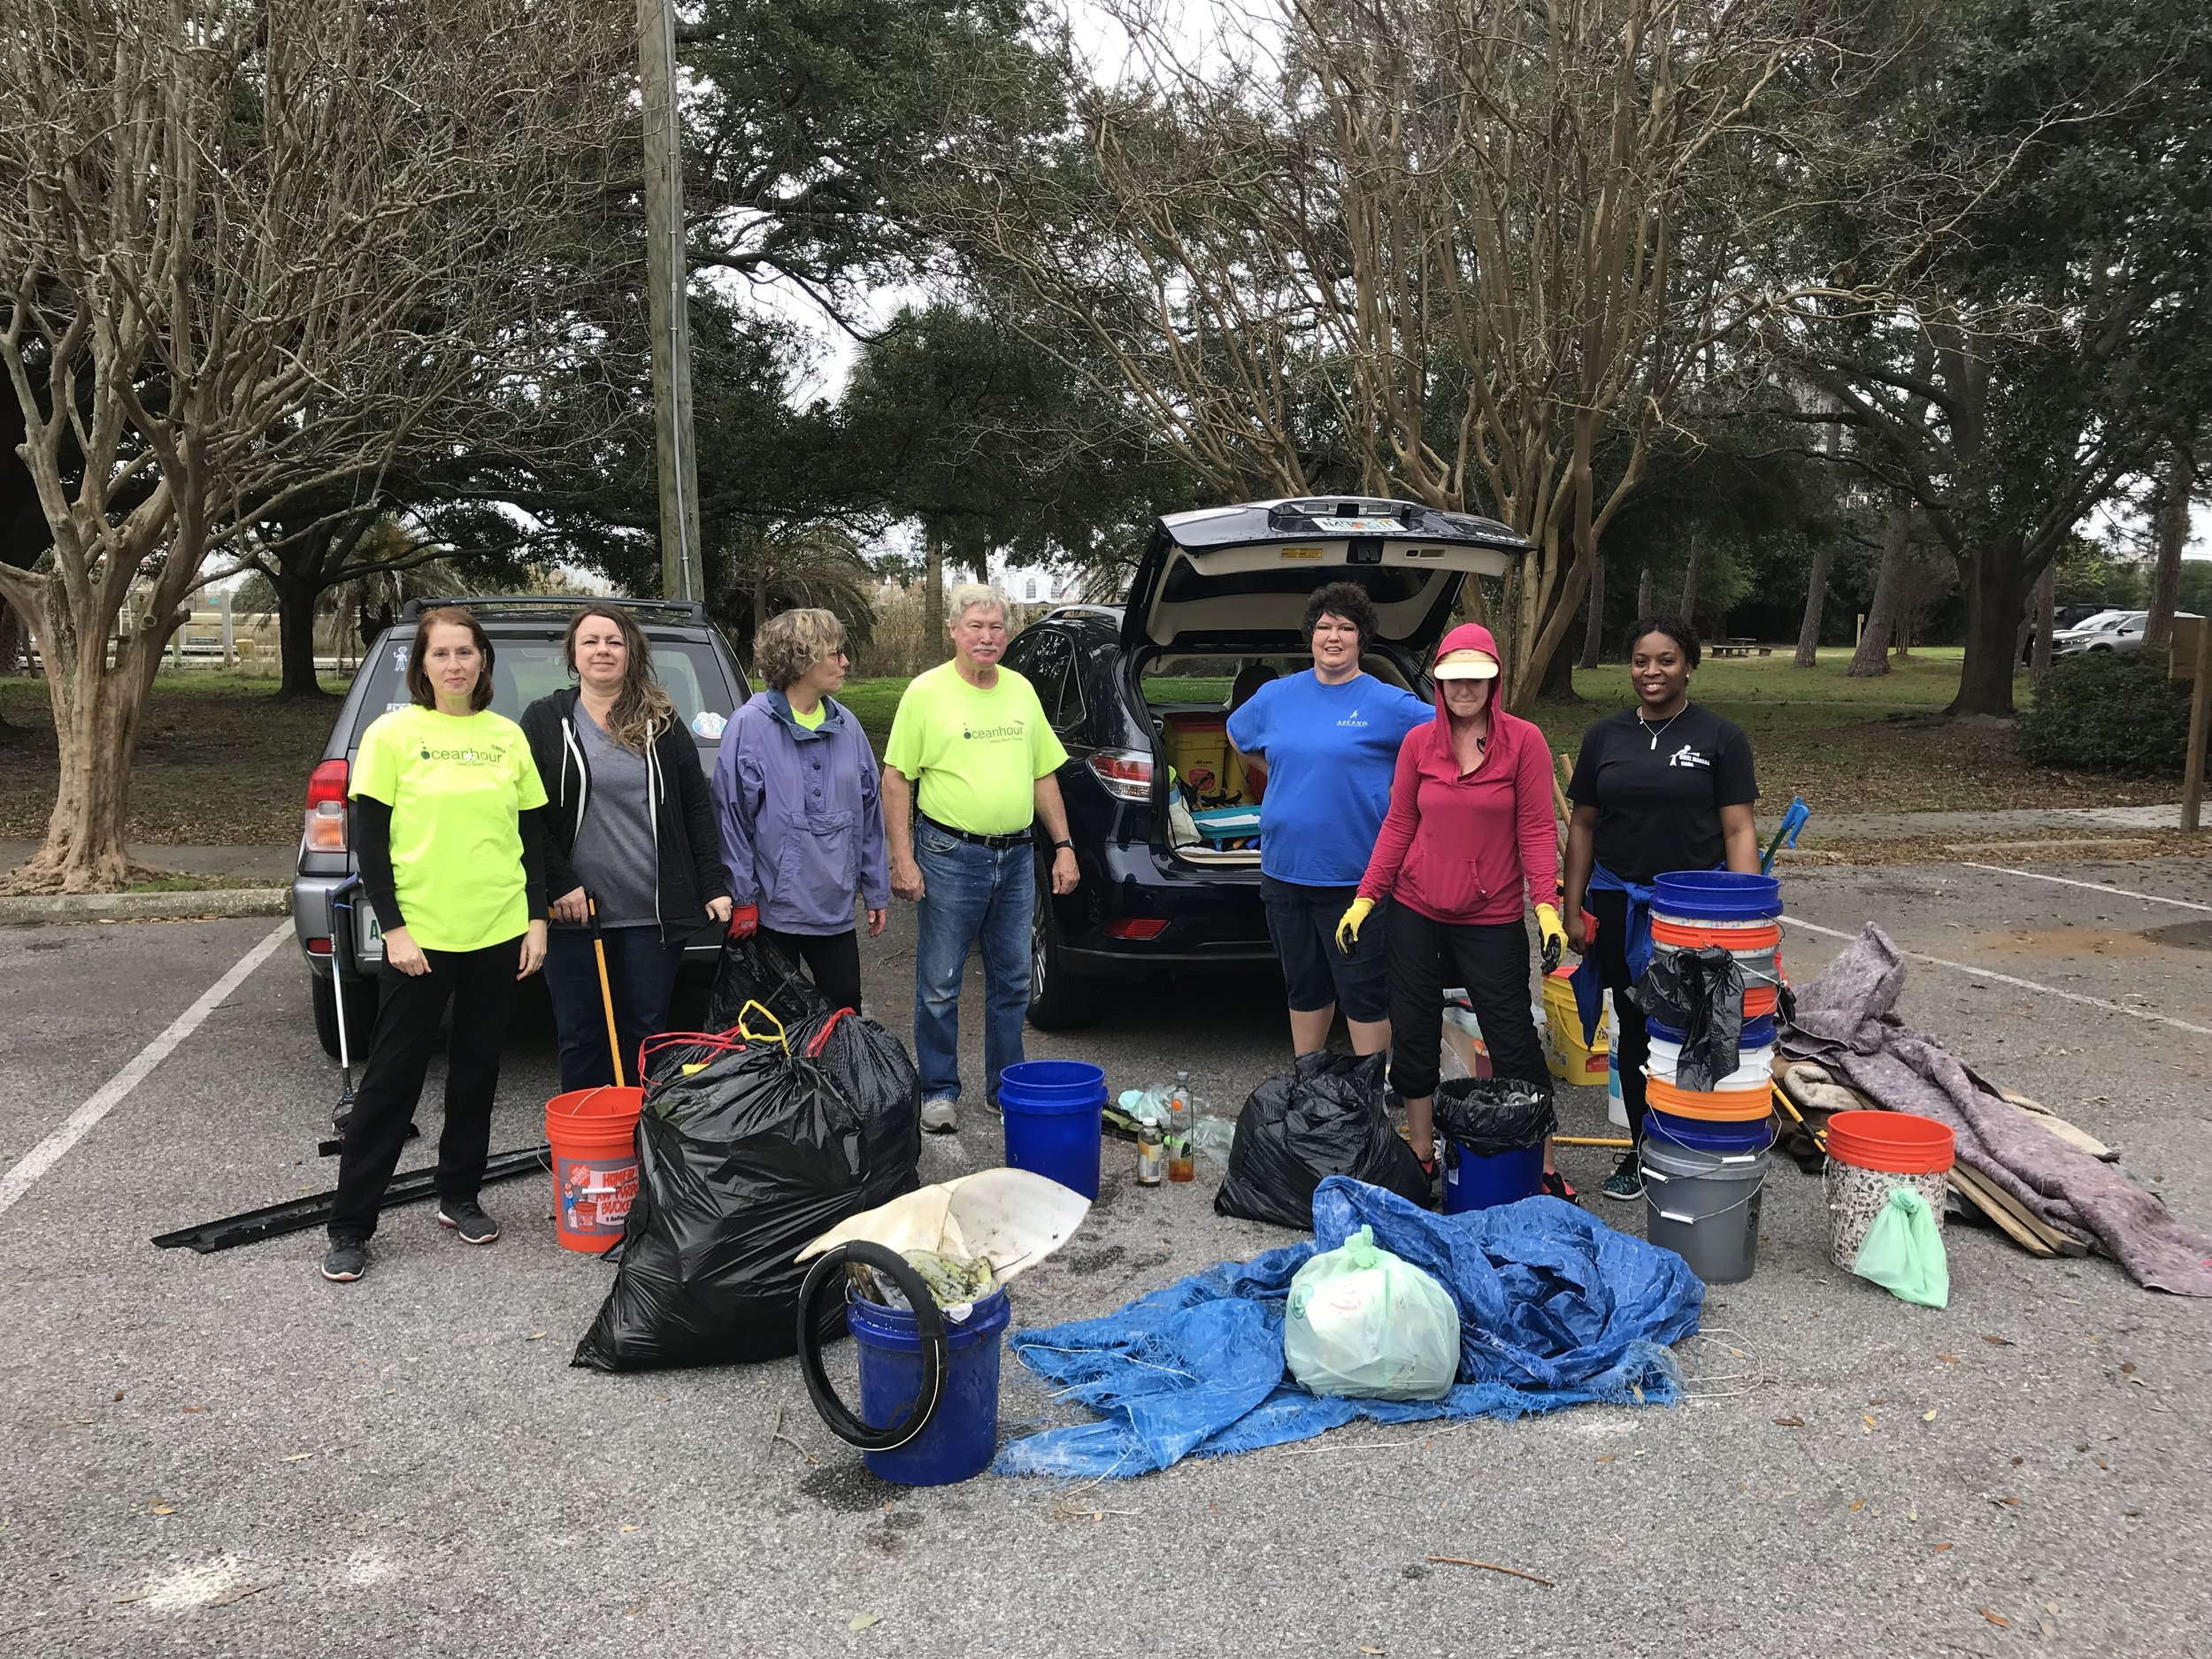 - Today's 66 volunteers are maintaining a weekly average trash pick up of 615 lbs in 2019. Groups contributing are Caldwell Bankers, Gulf Coast Citizen Diplomacy Council